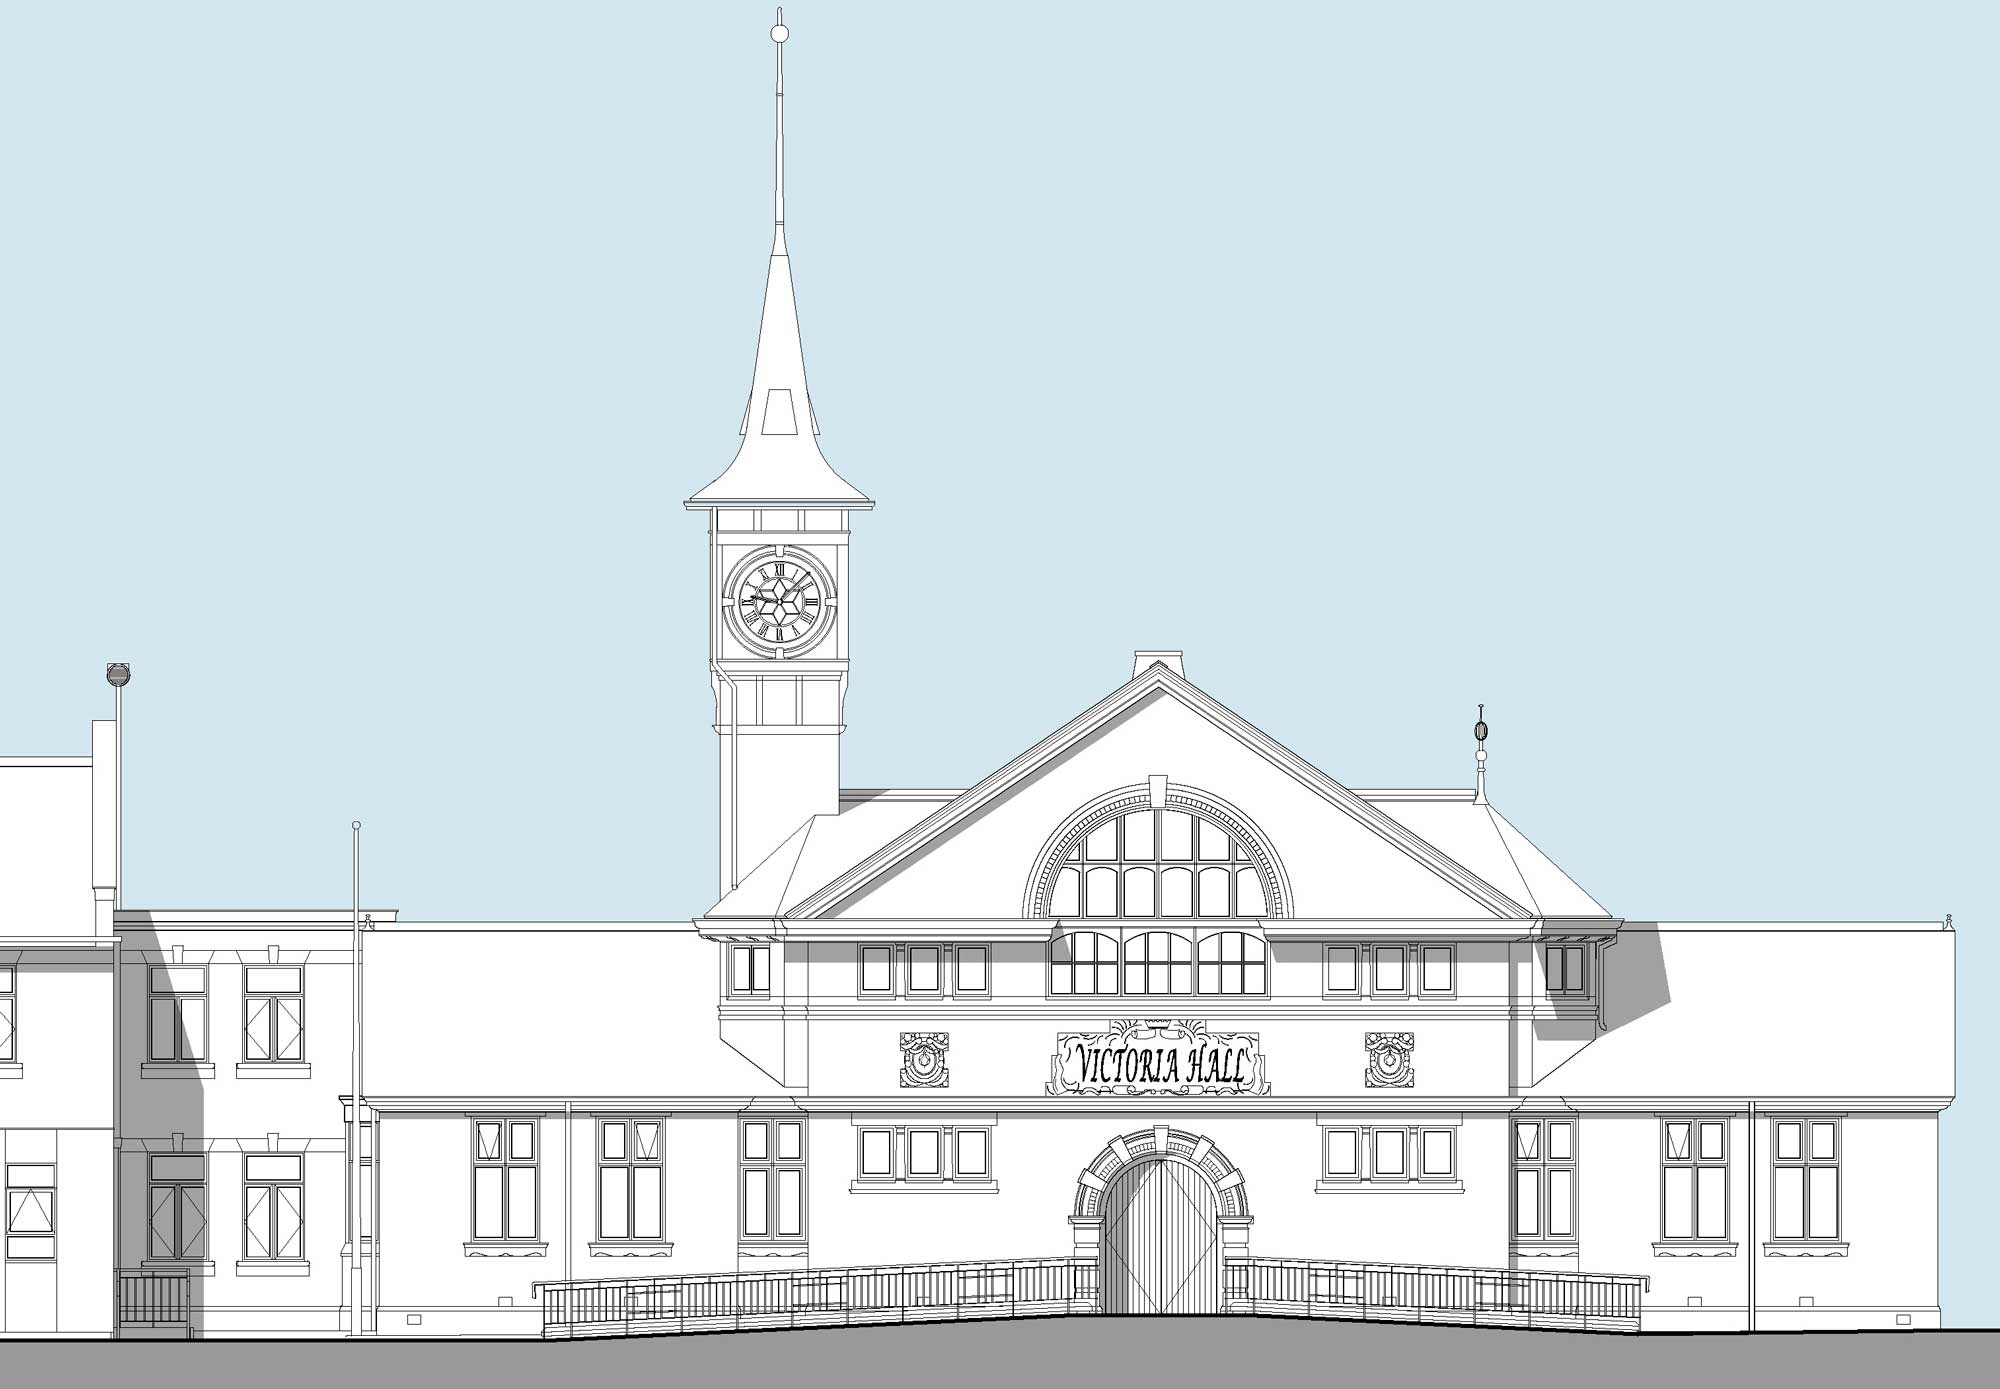 kidsgrove Victoria hall elevation drawing